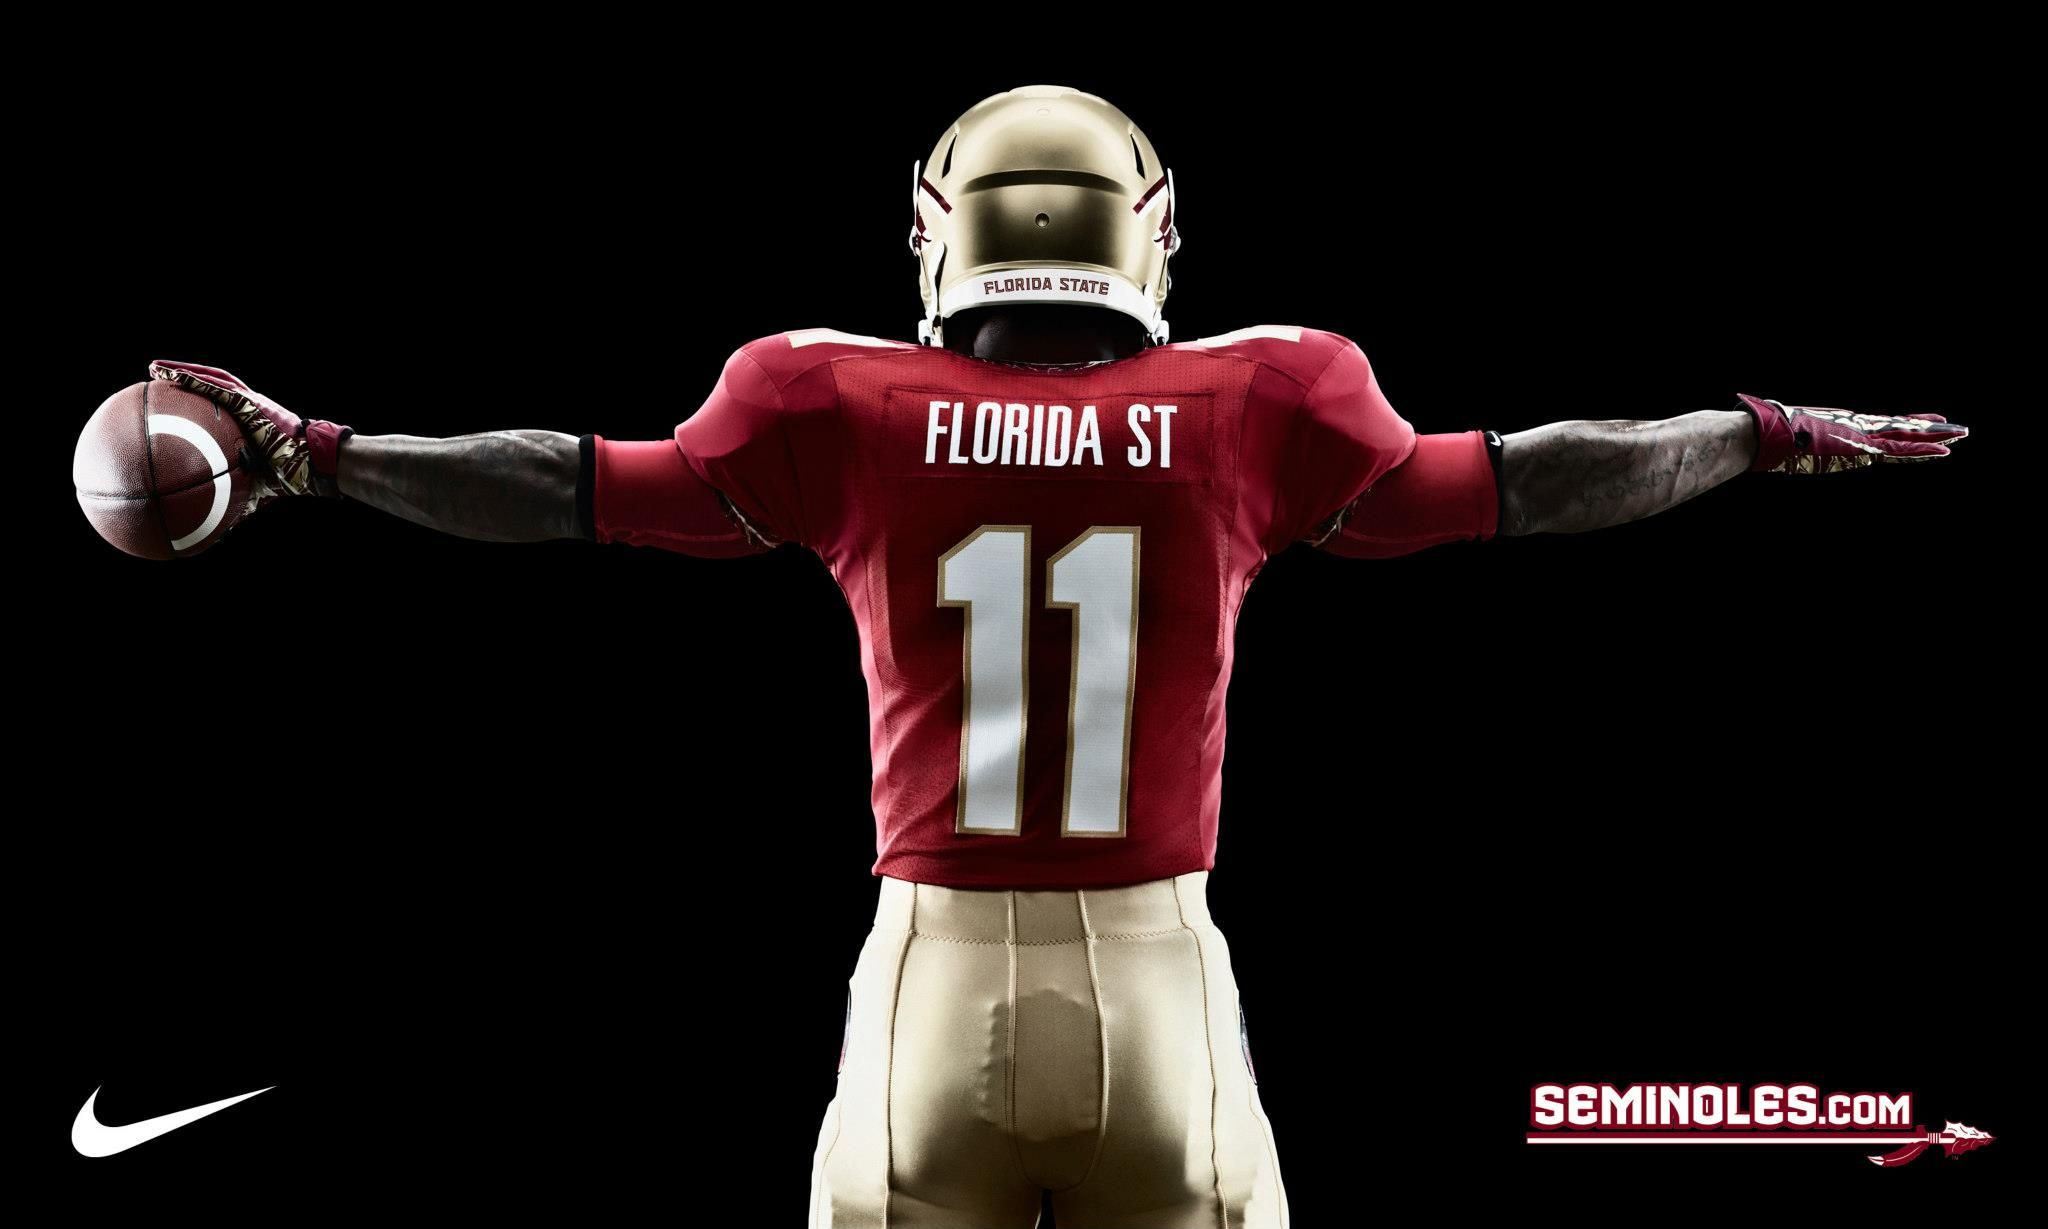 Fsu florida state nike pro combat football uniforms 2012 helmet fsu florida state nike pro combat football uniforms voltagebd Image collections